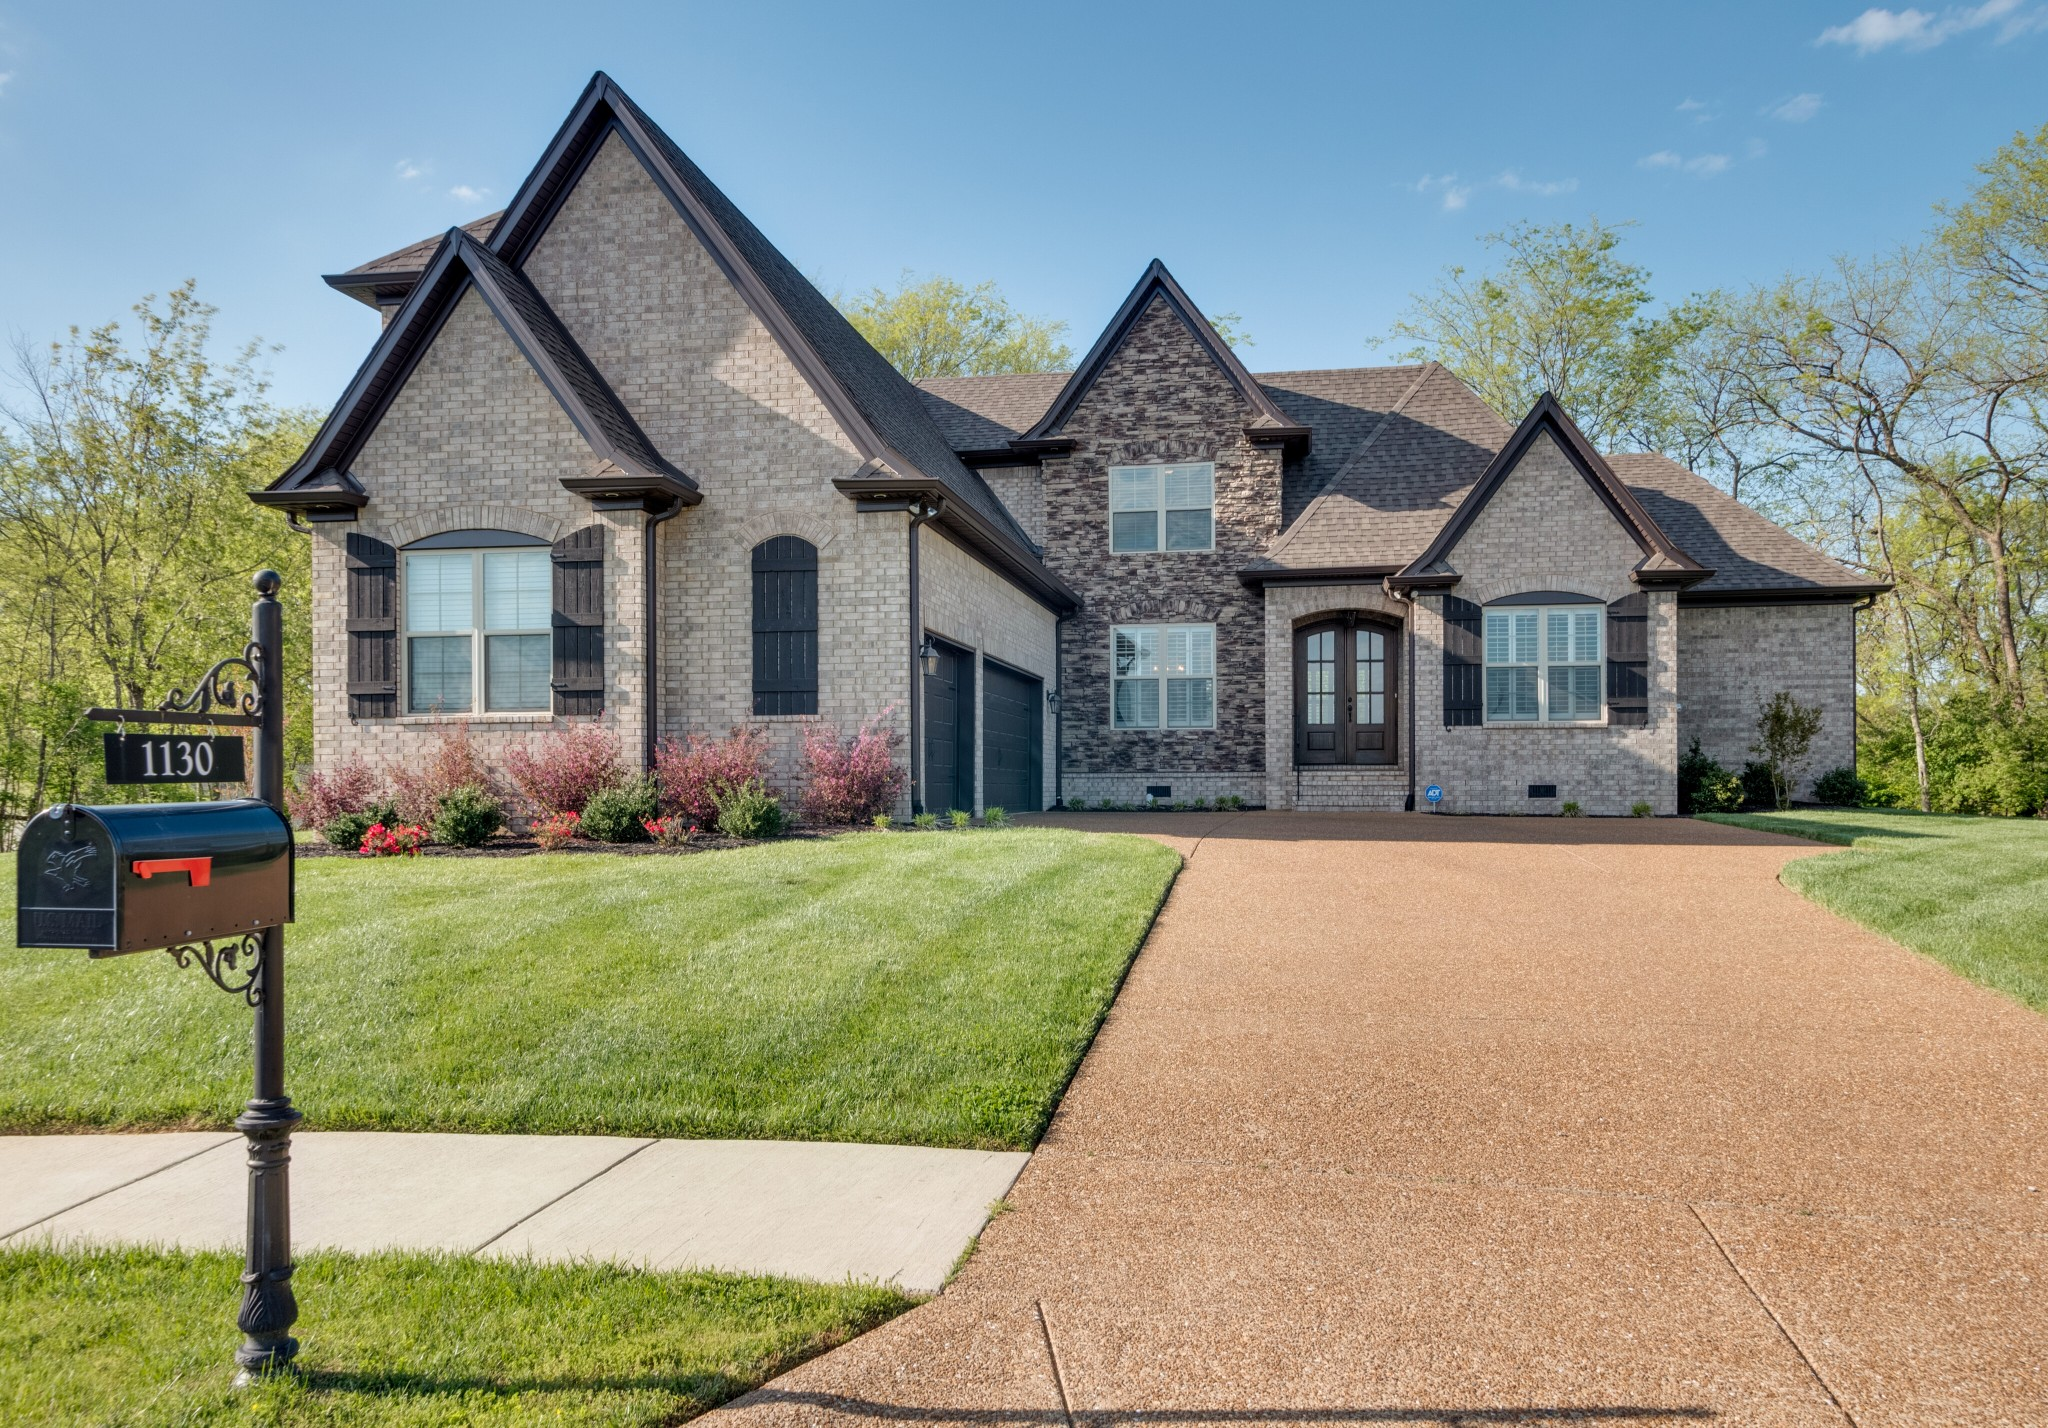 1130 Luxborough Dr Property Photo - Hendersonville, TN real estate listing